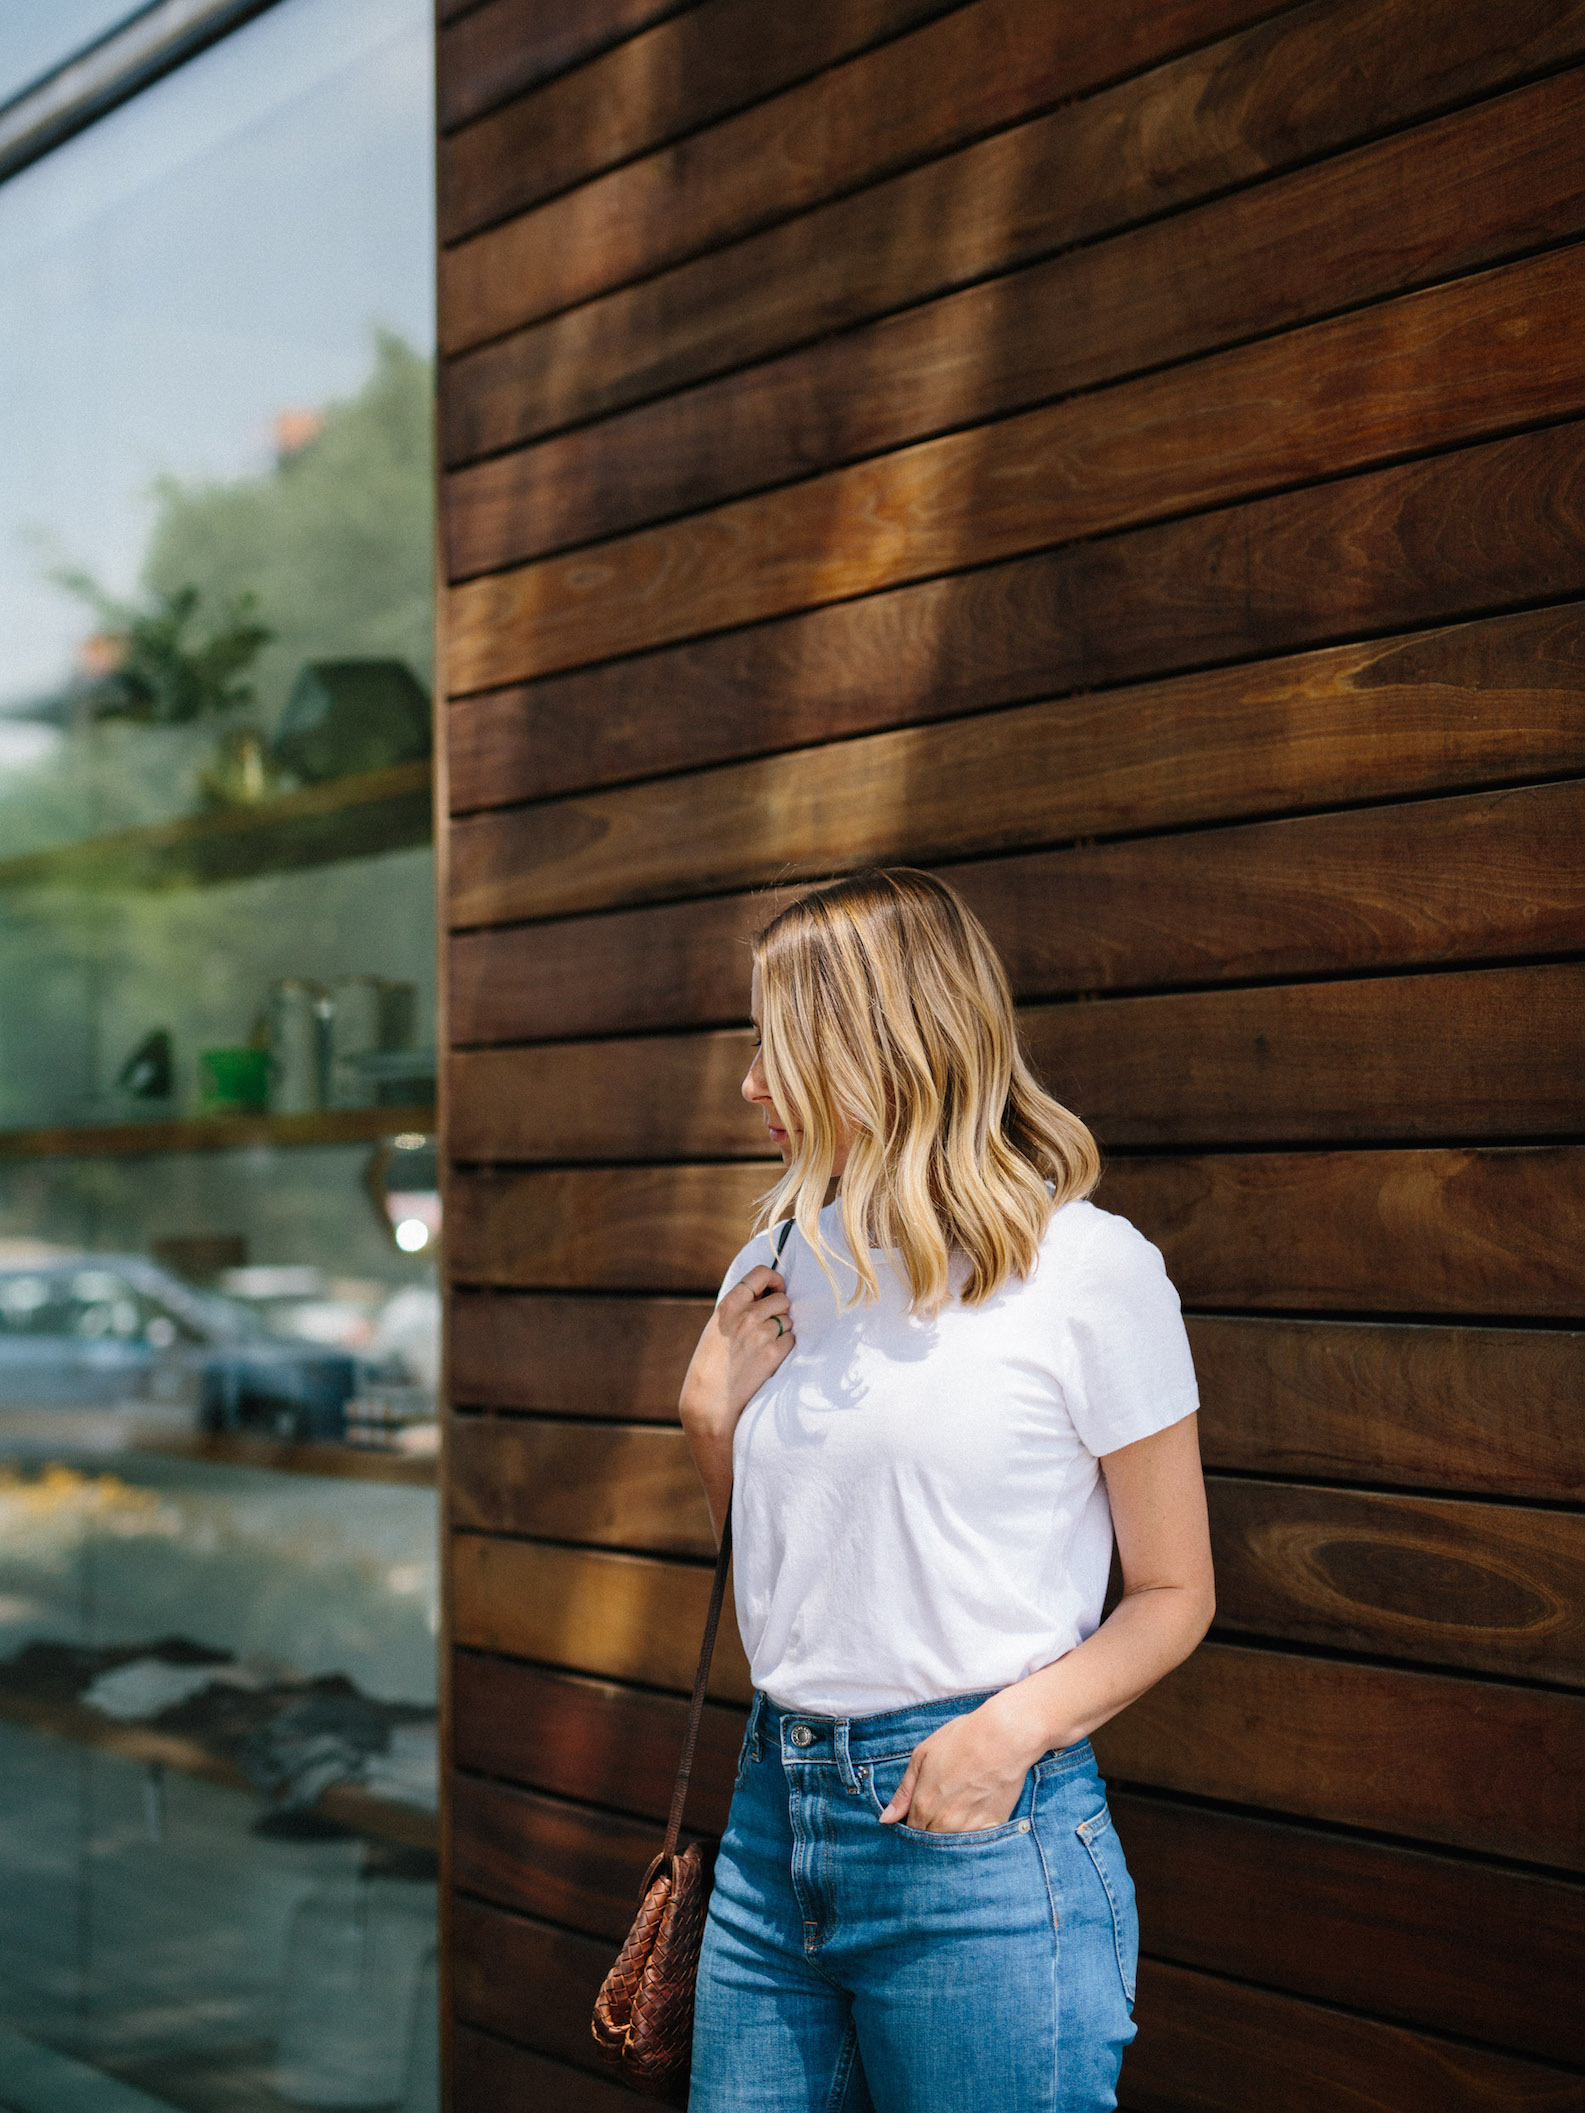 Running errands outfit // A Week Of Summertime Minimalist Outfits With Ava Darnell, Founder Of Slumlove Sweater Company on The Good Trade